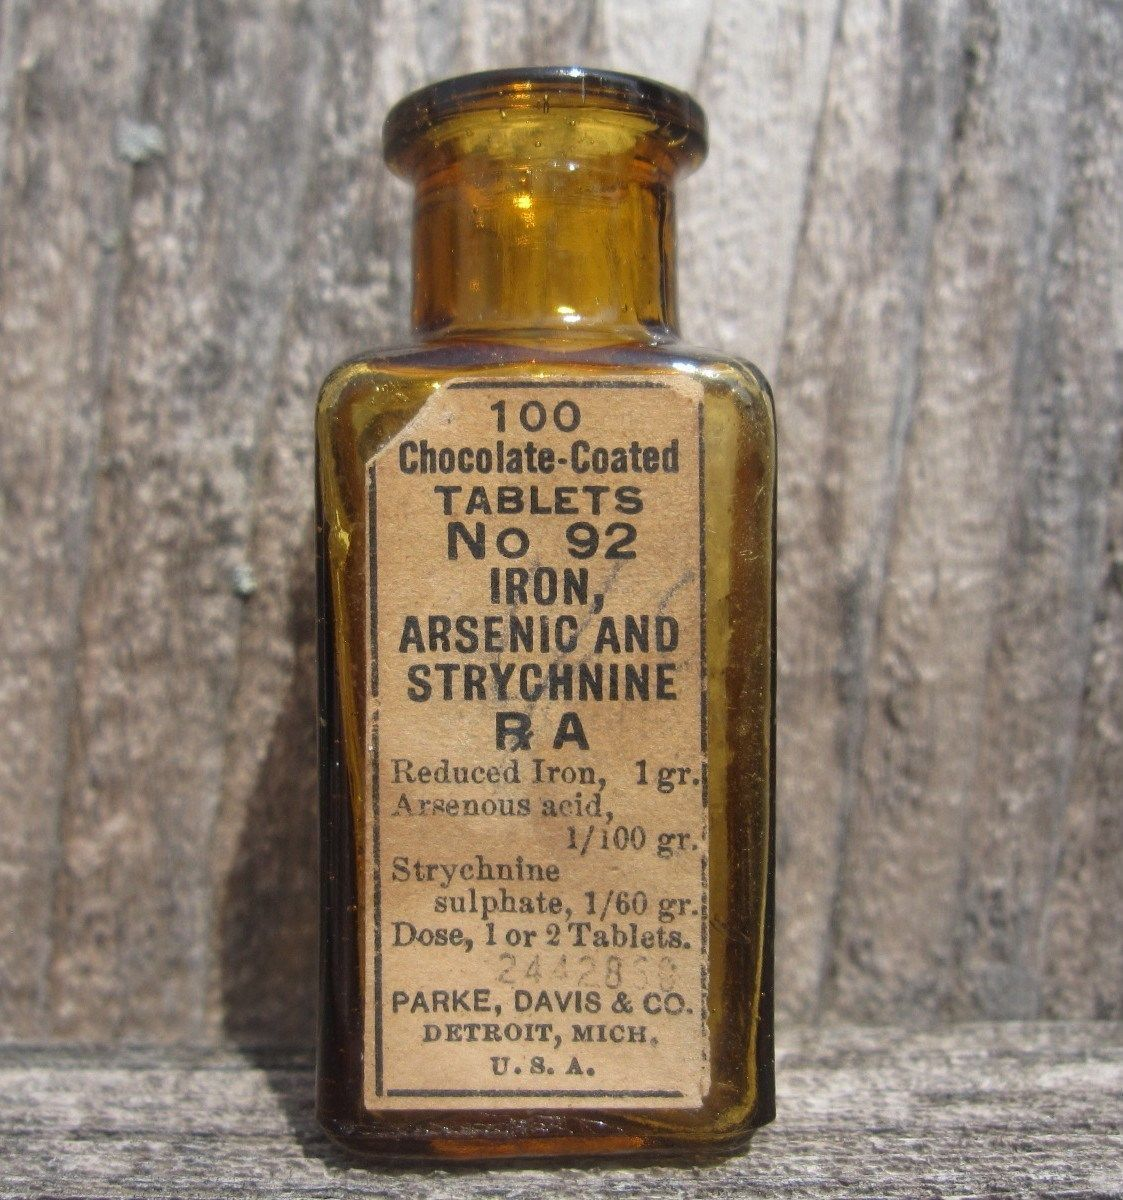 Chocolate Coated Arsenic And Strychnine, Can I Please Have